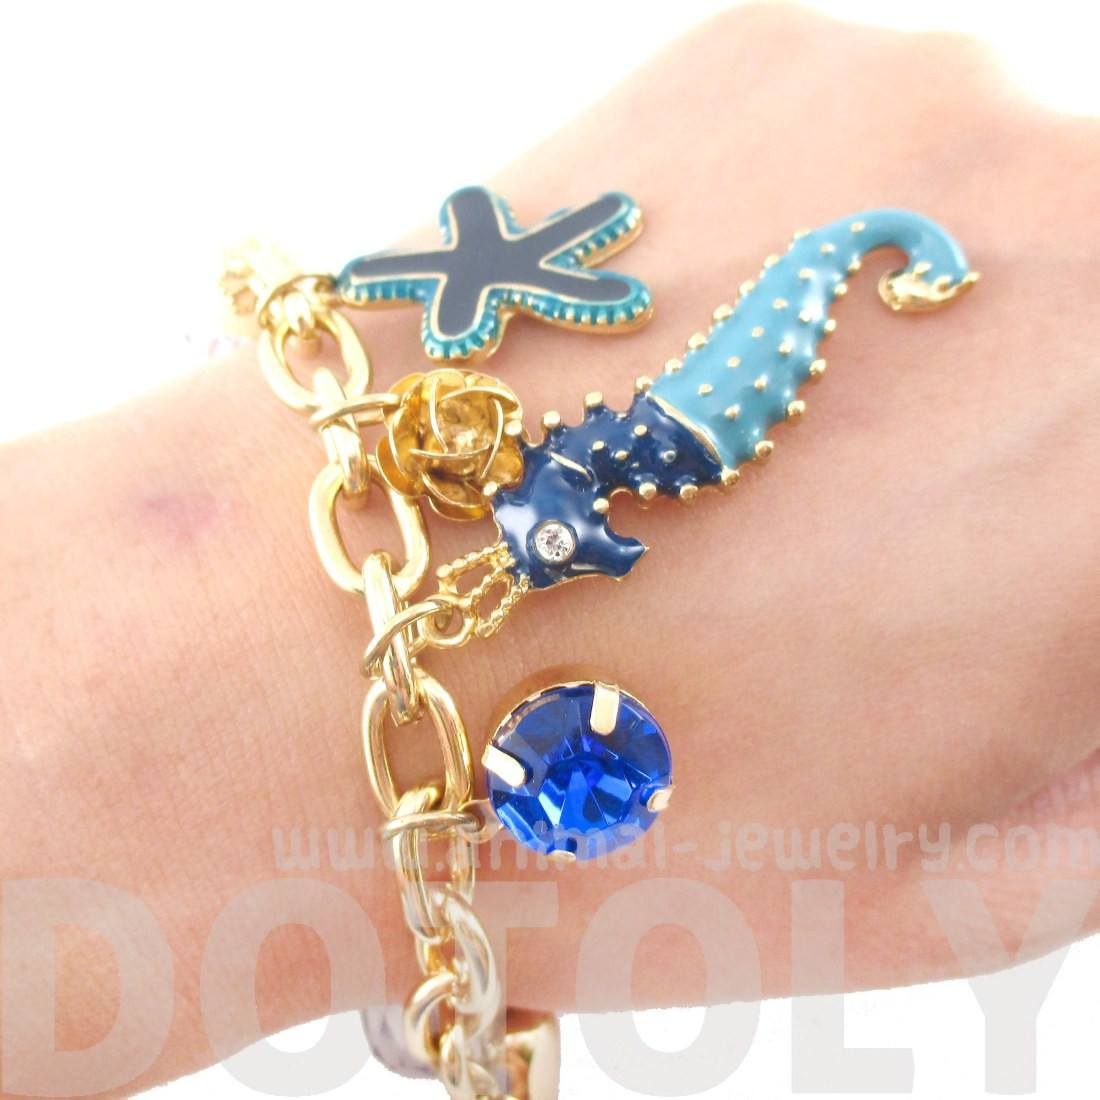 Seahorse Starfish Jewels of the Sea Charm Bracelet